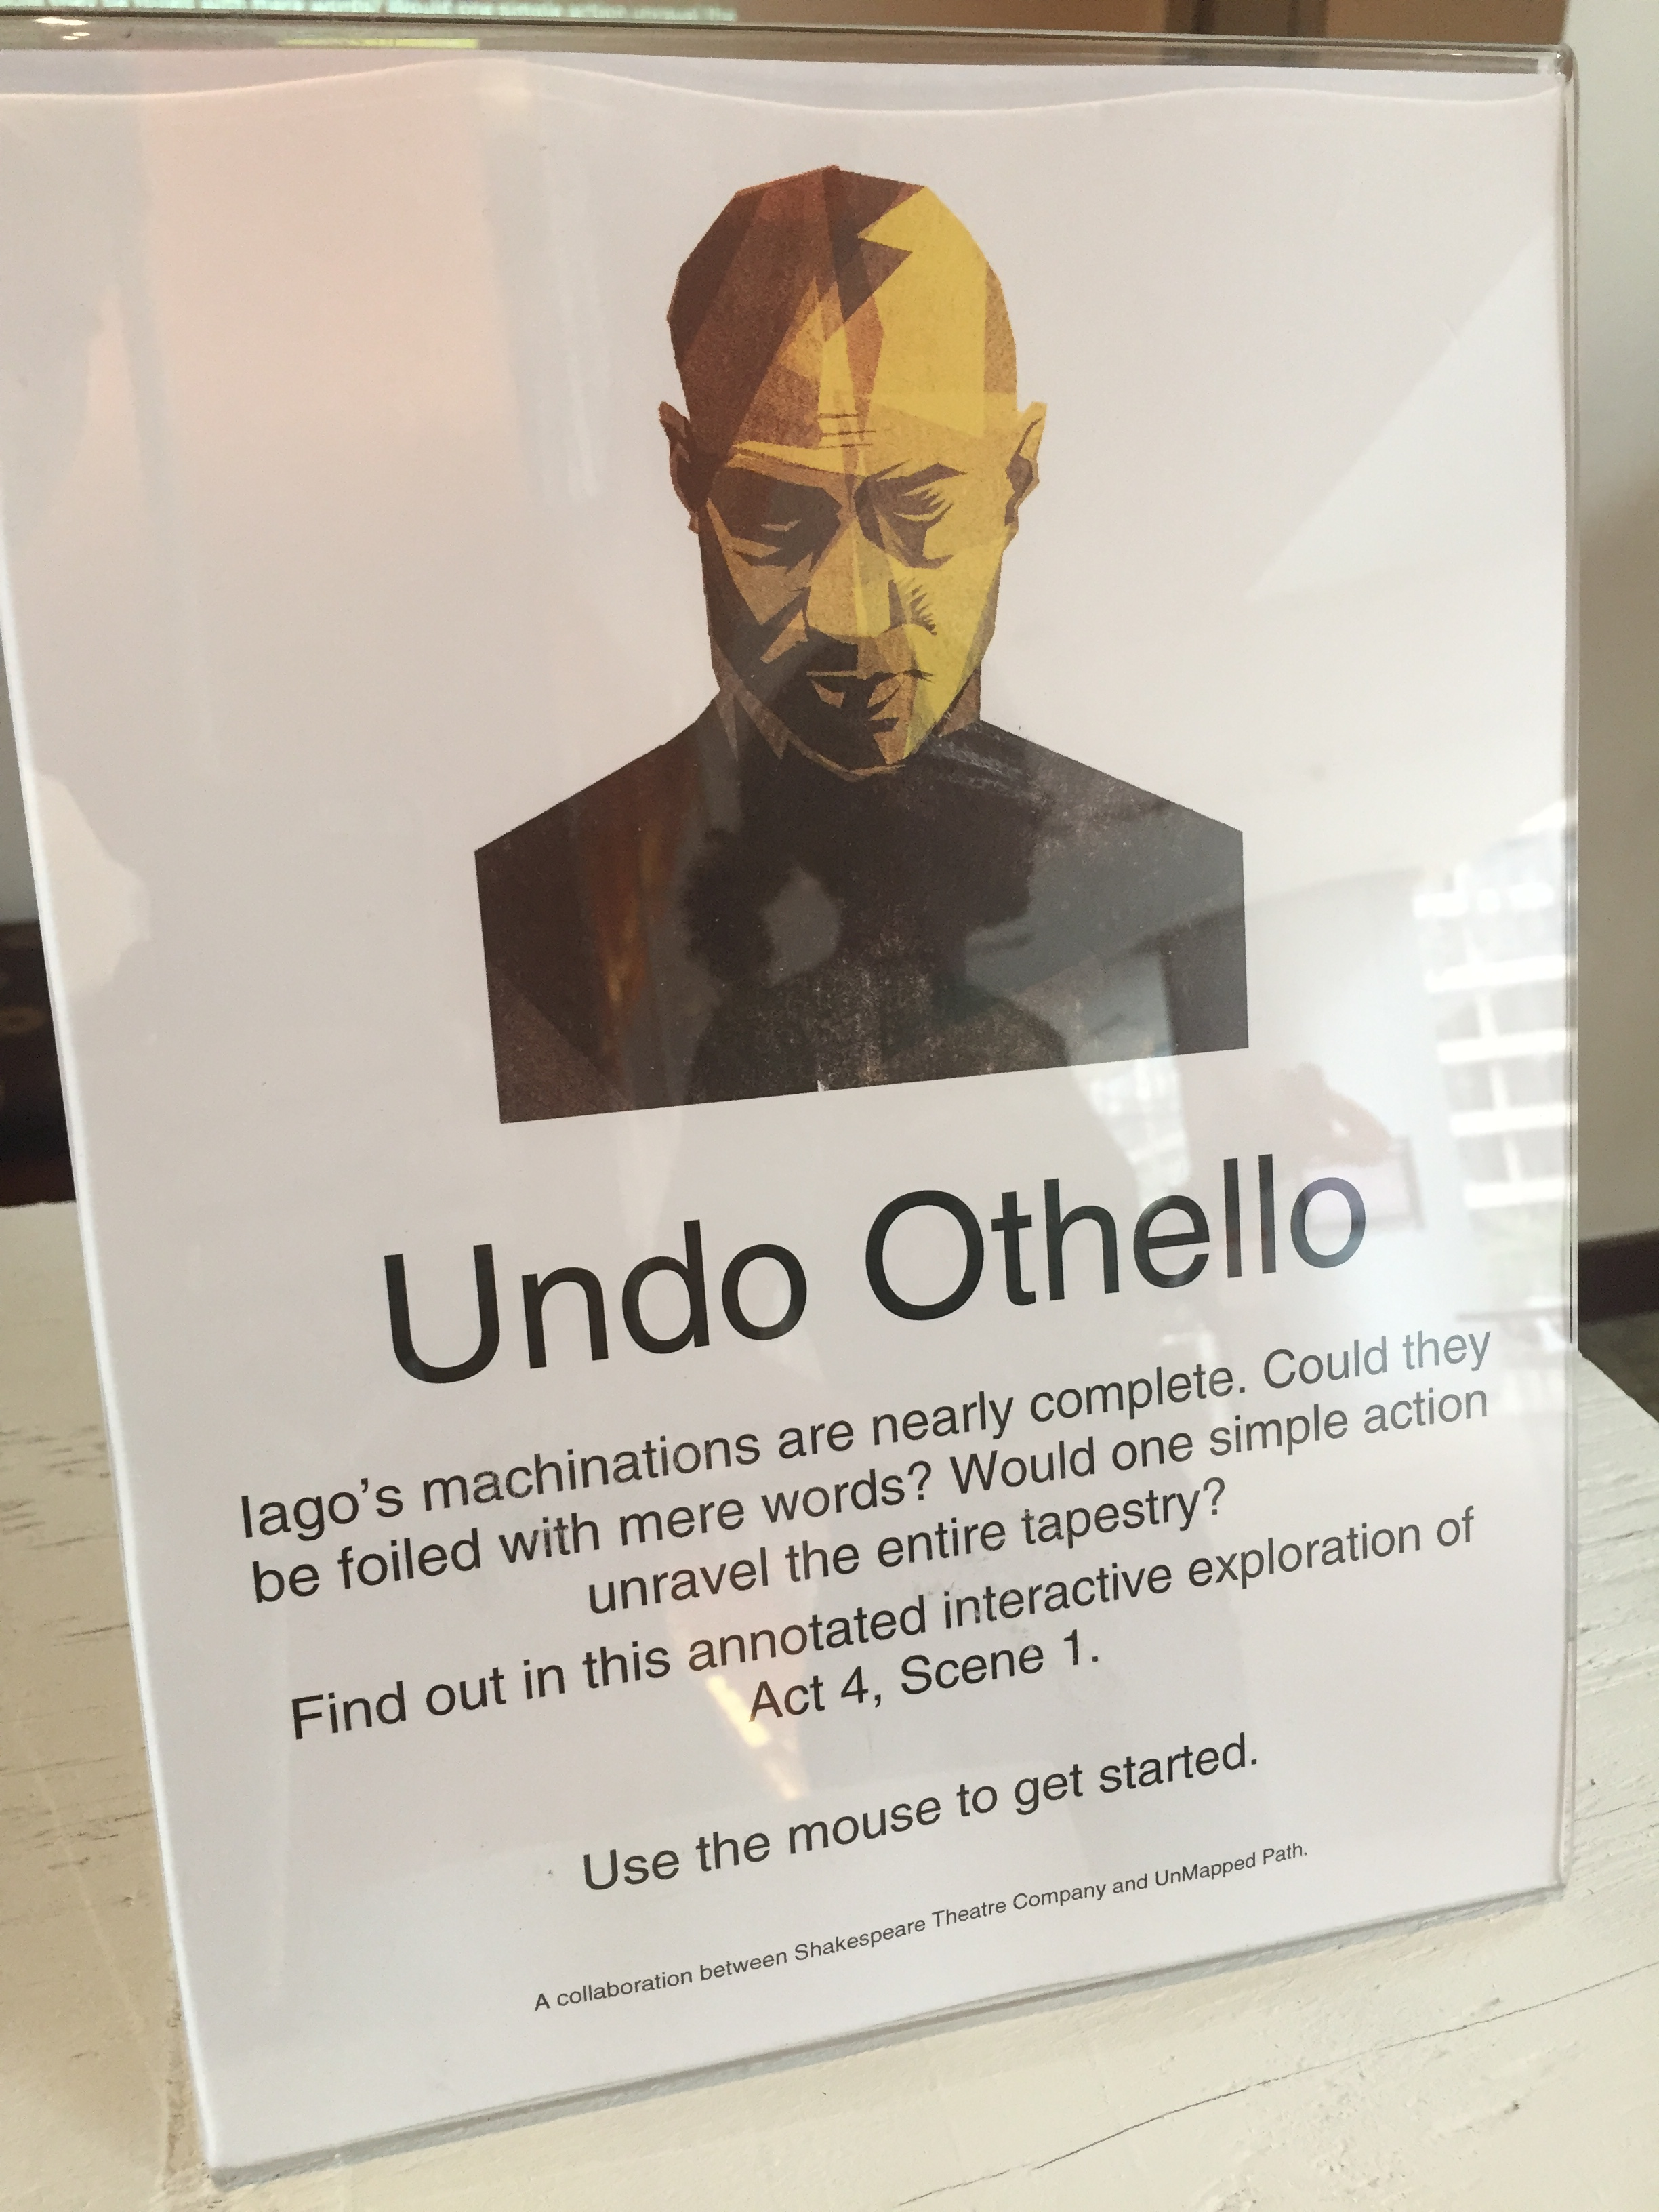 Undo Othello Lobby Sign